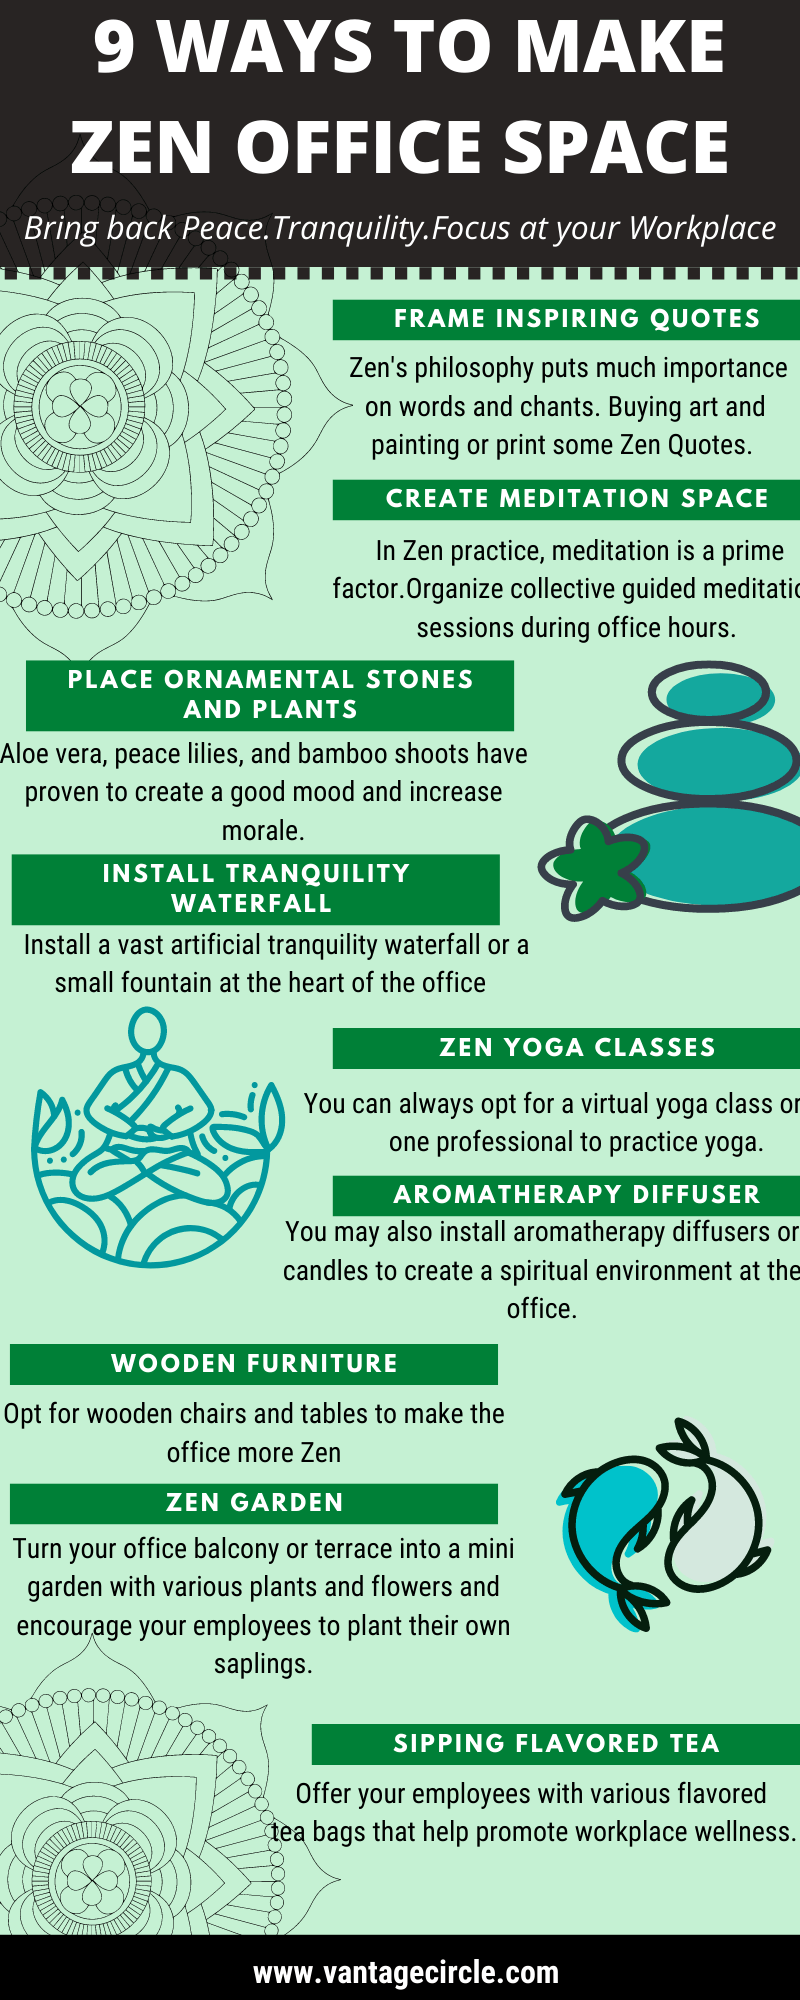 9 ways to make zen office space Infographic